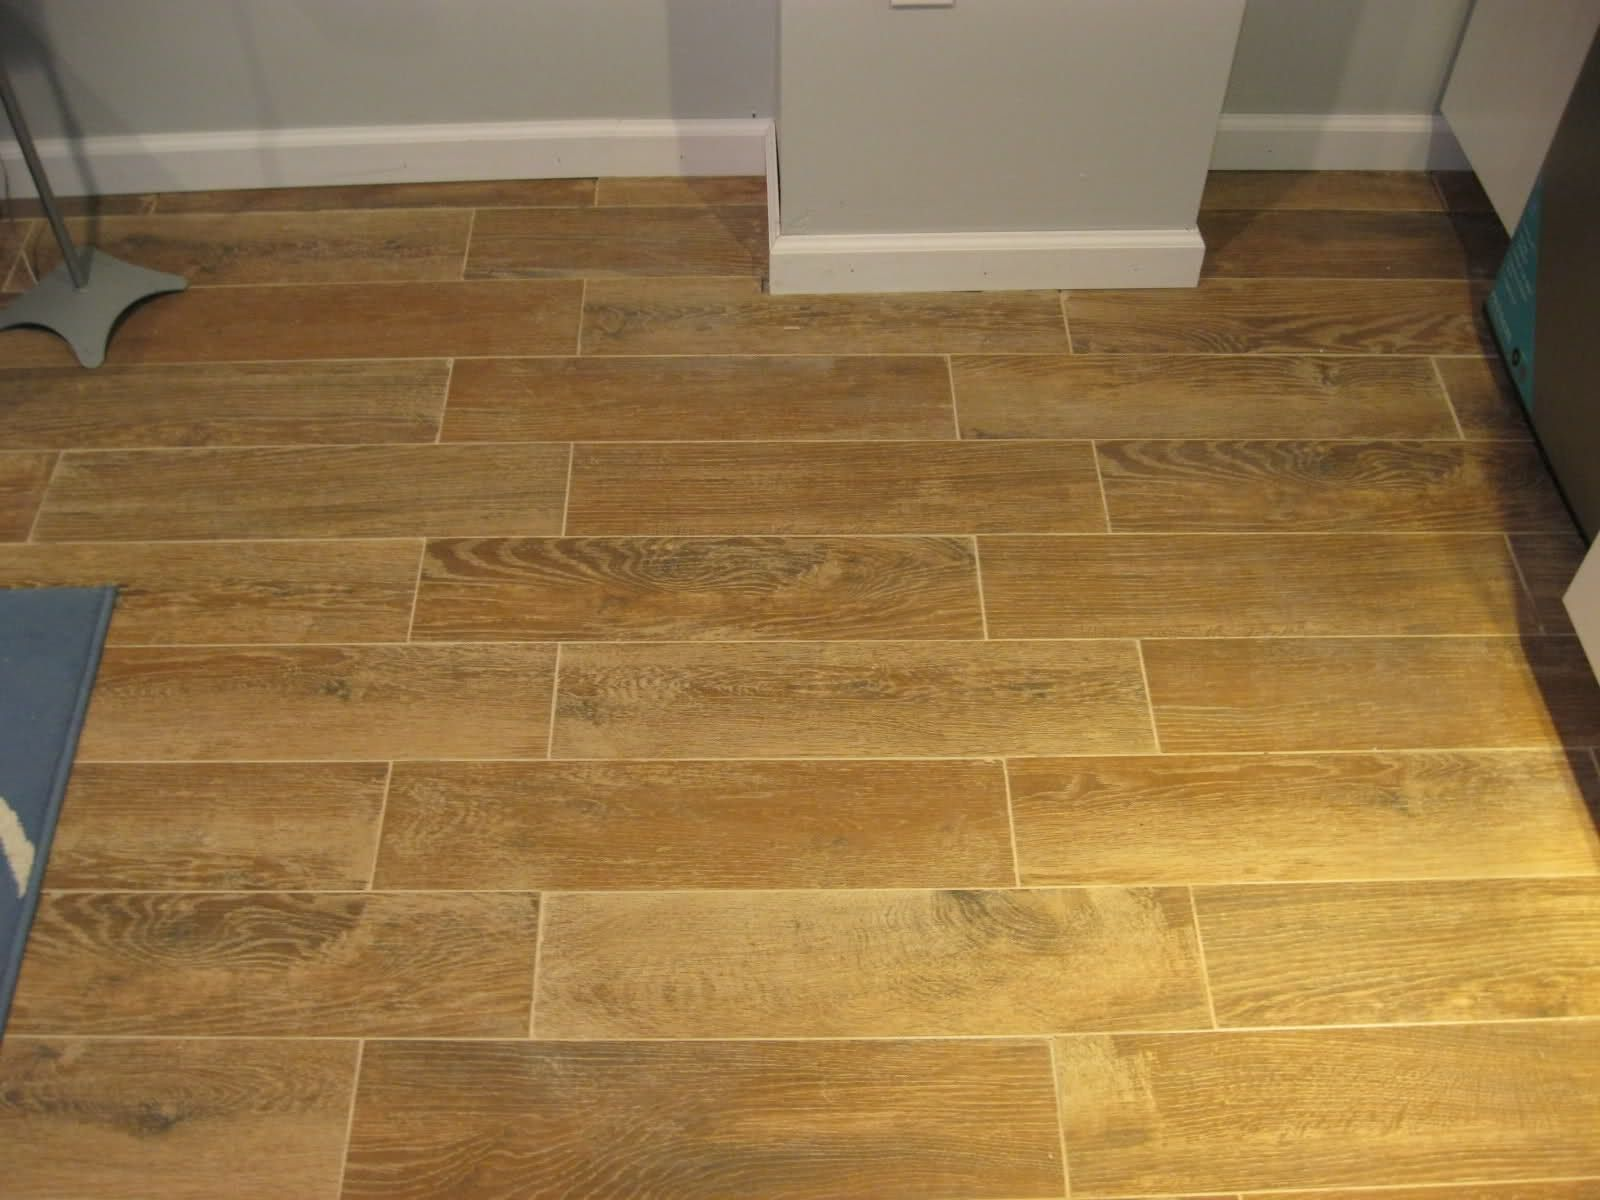 Wood Grain Ceramic Floor Tiles   http   dreamhomesbyrob com     Wood Grain Ceramic Floor Tiles